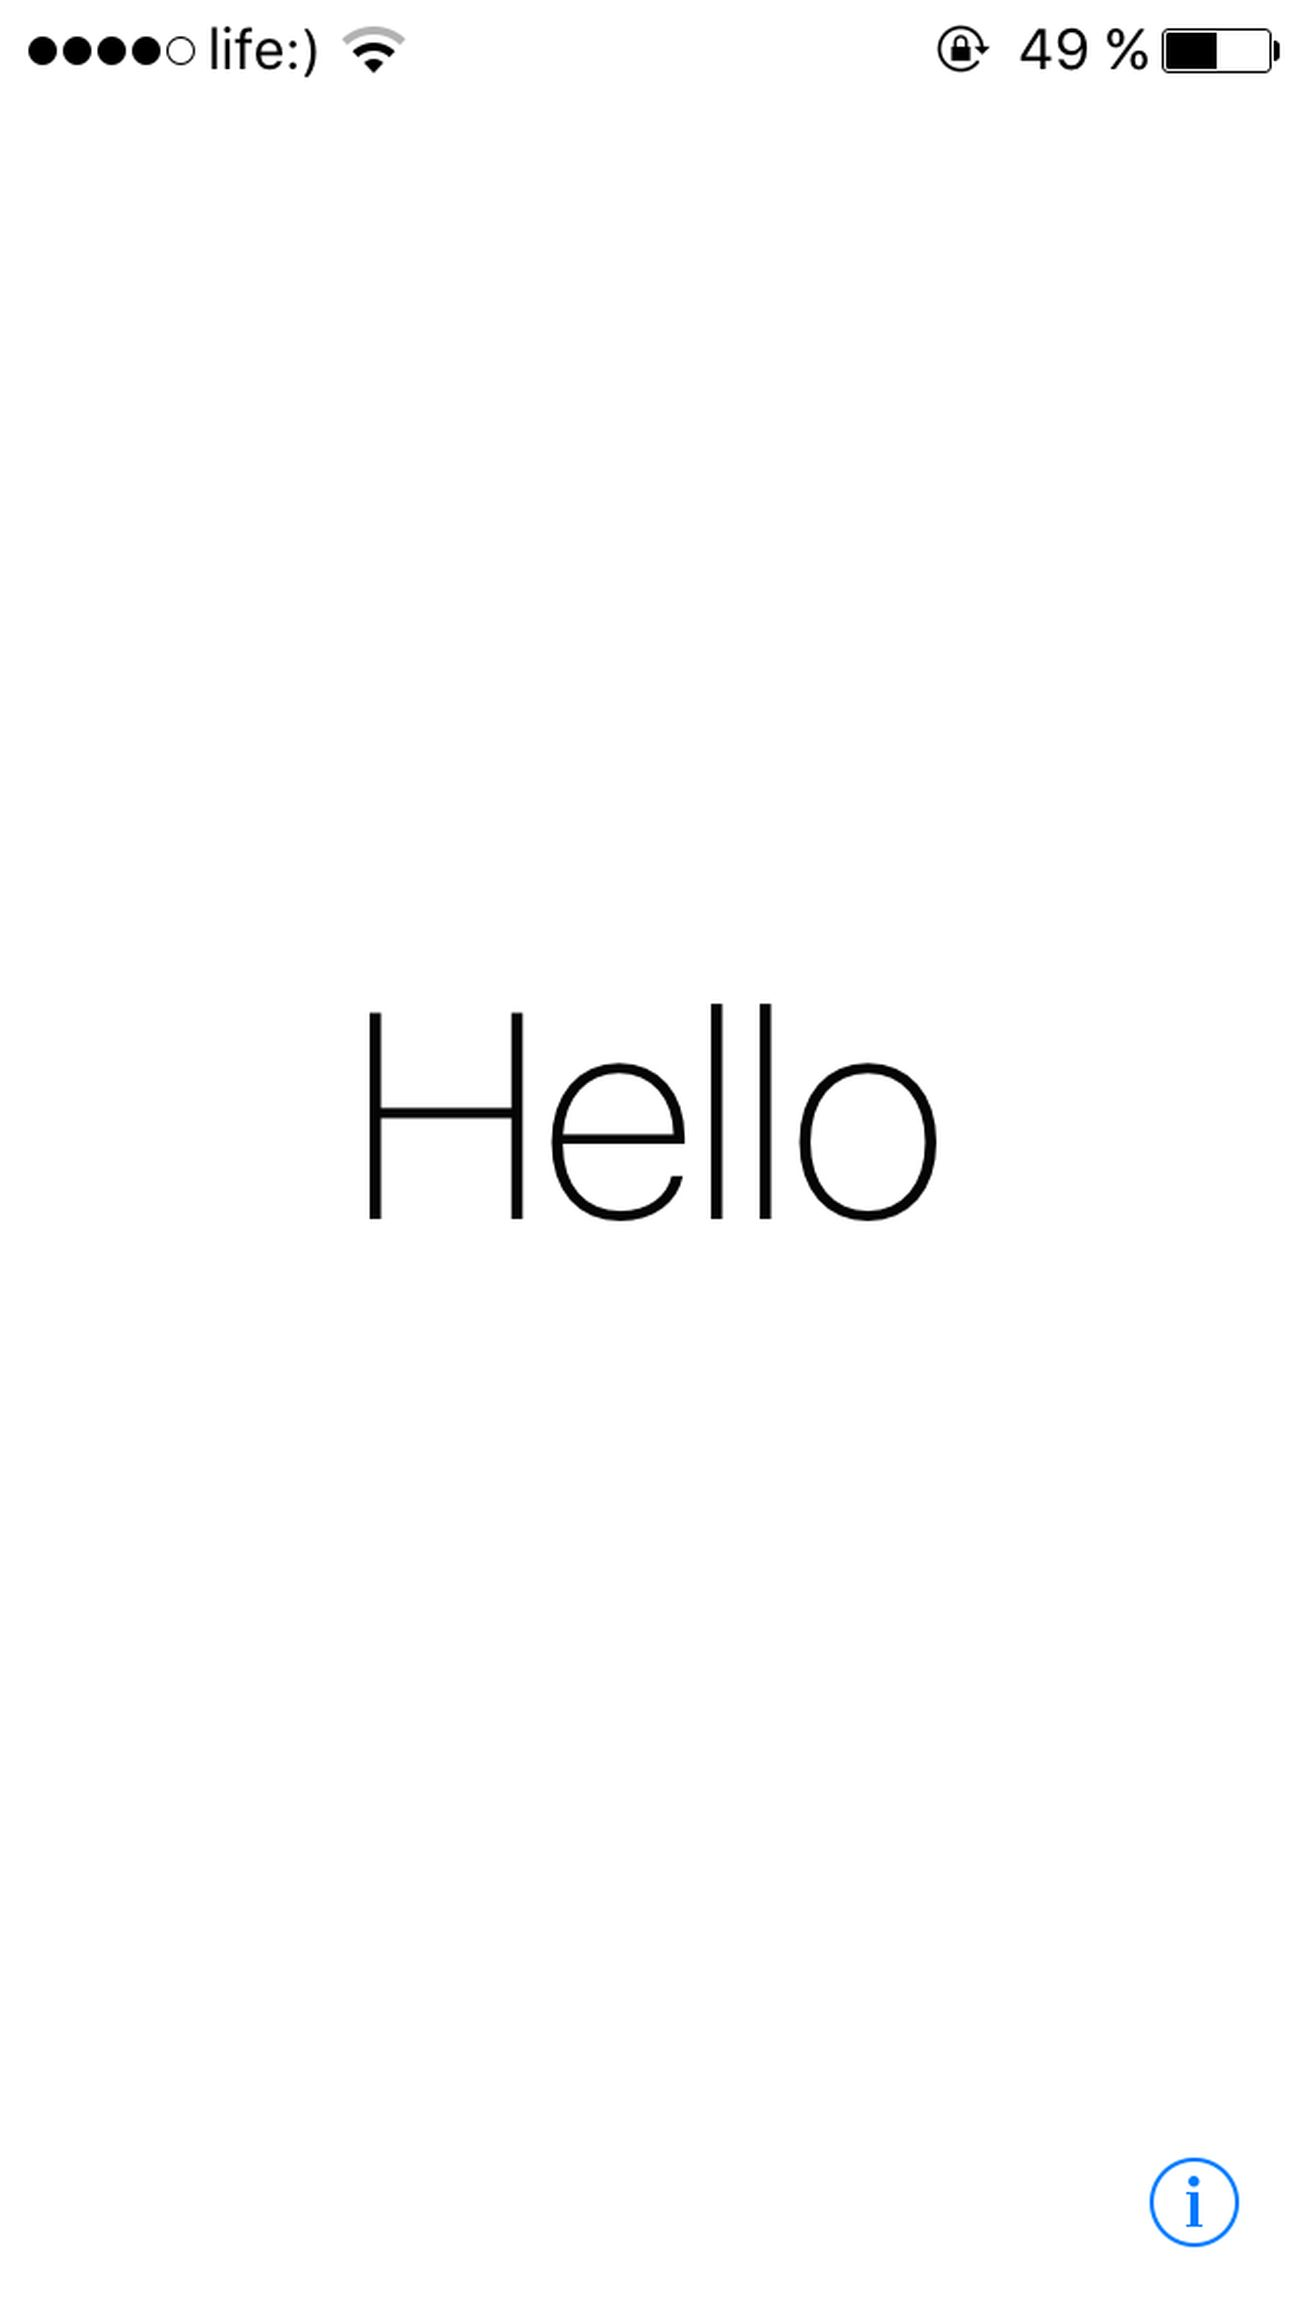 Apple IOS9 Beta Hello 2015